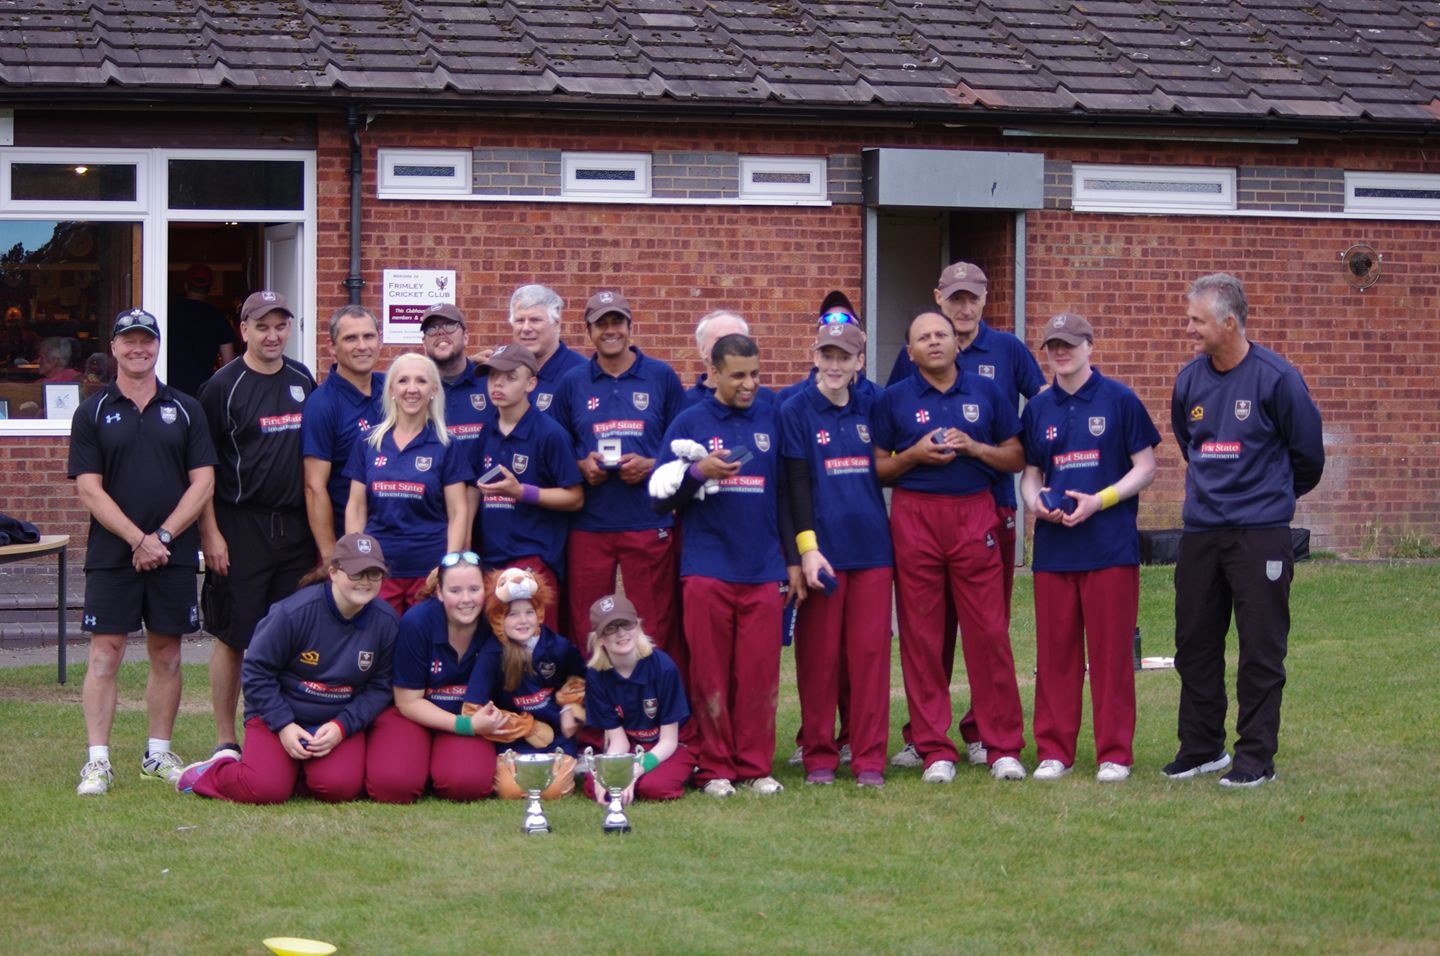 Image shows Lois with they Surrey VI cricket team